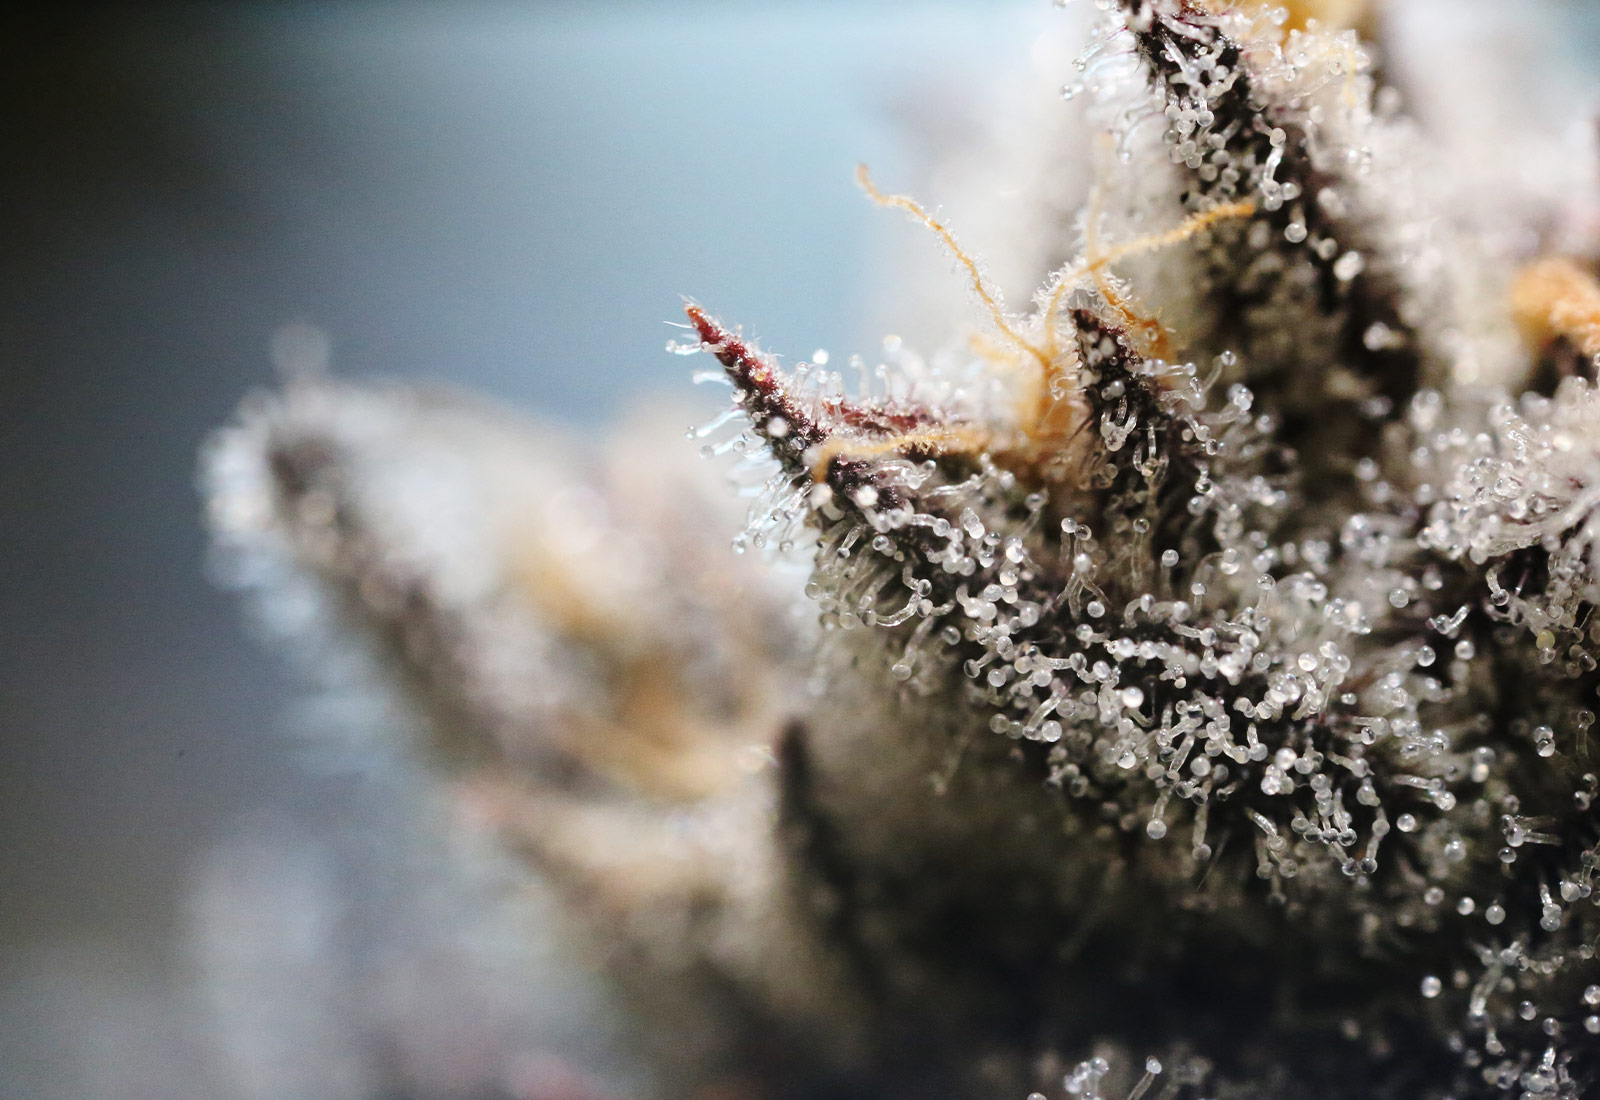 high quality close up image of a Cannabis strain with thc in plain view